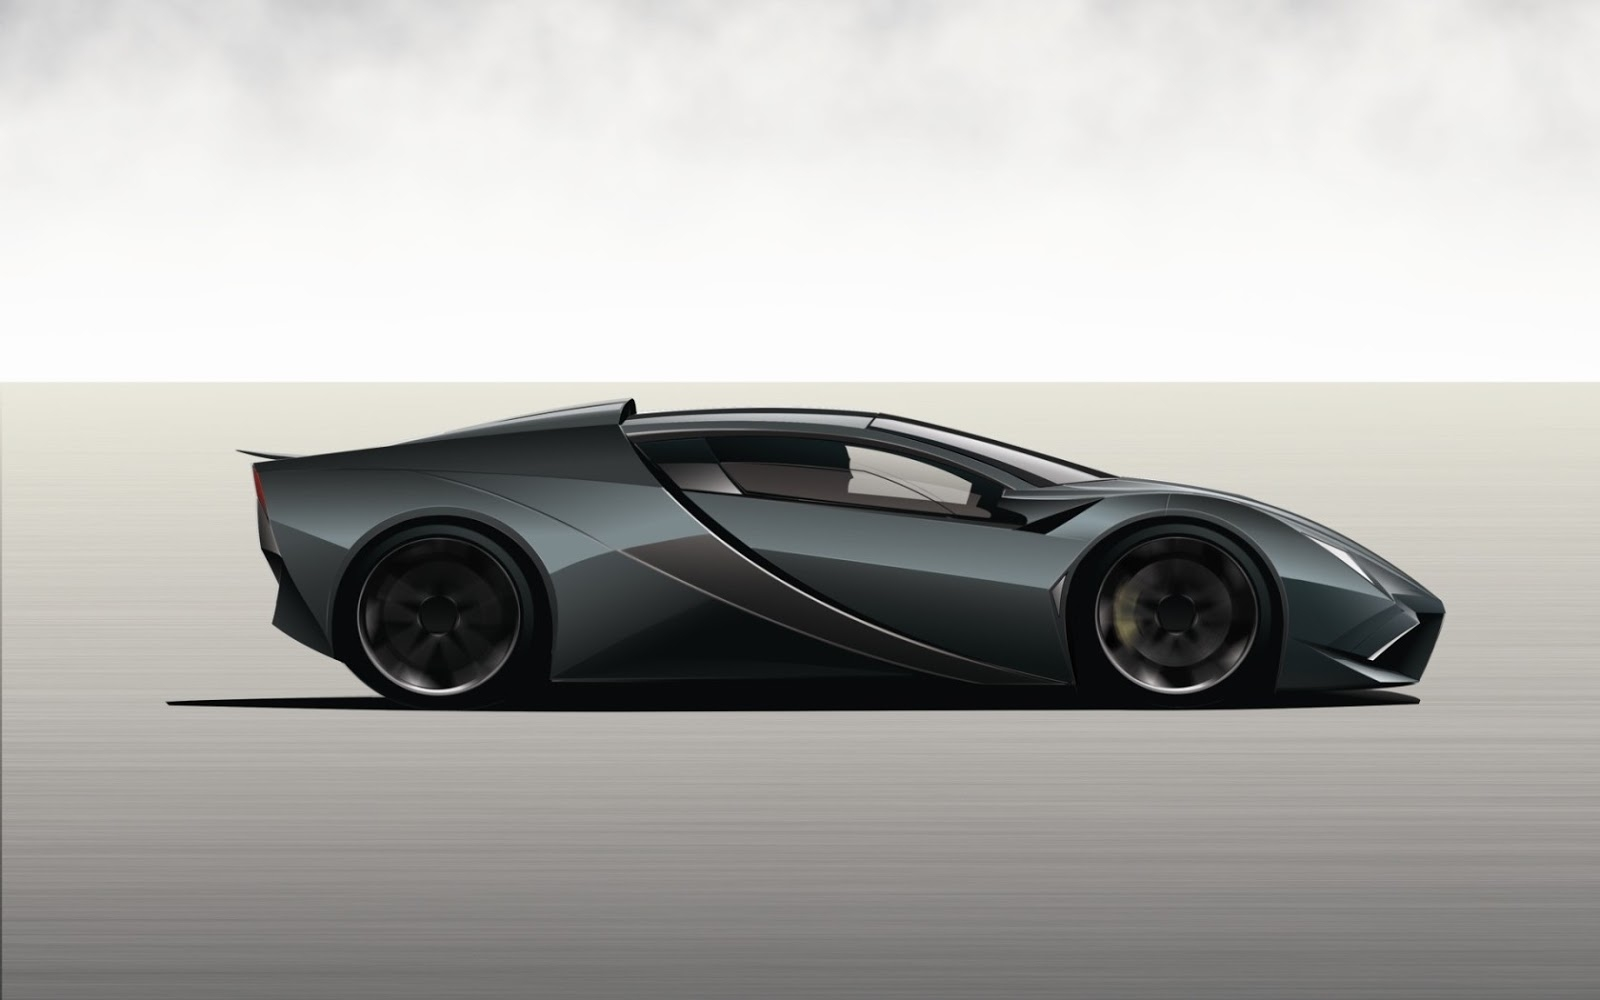 Black Sports Car Wallpaper: Black Sports Car Pictures, Photos, And Images For Facebook